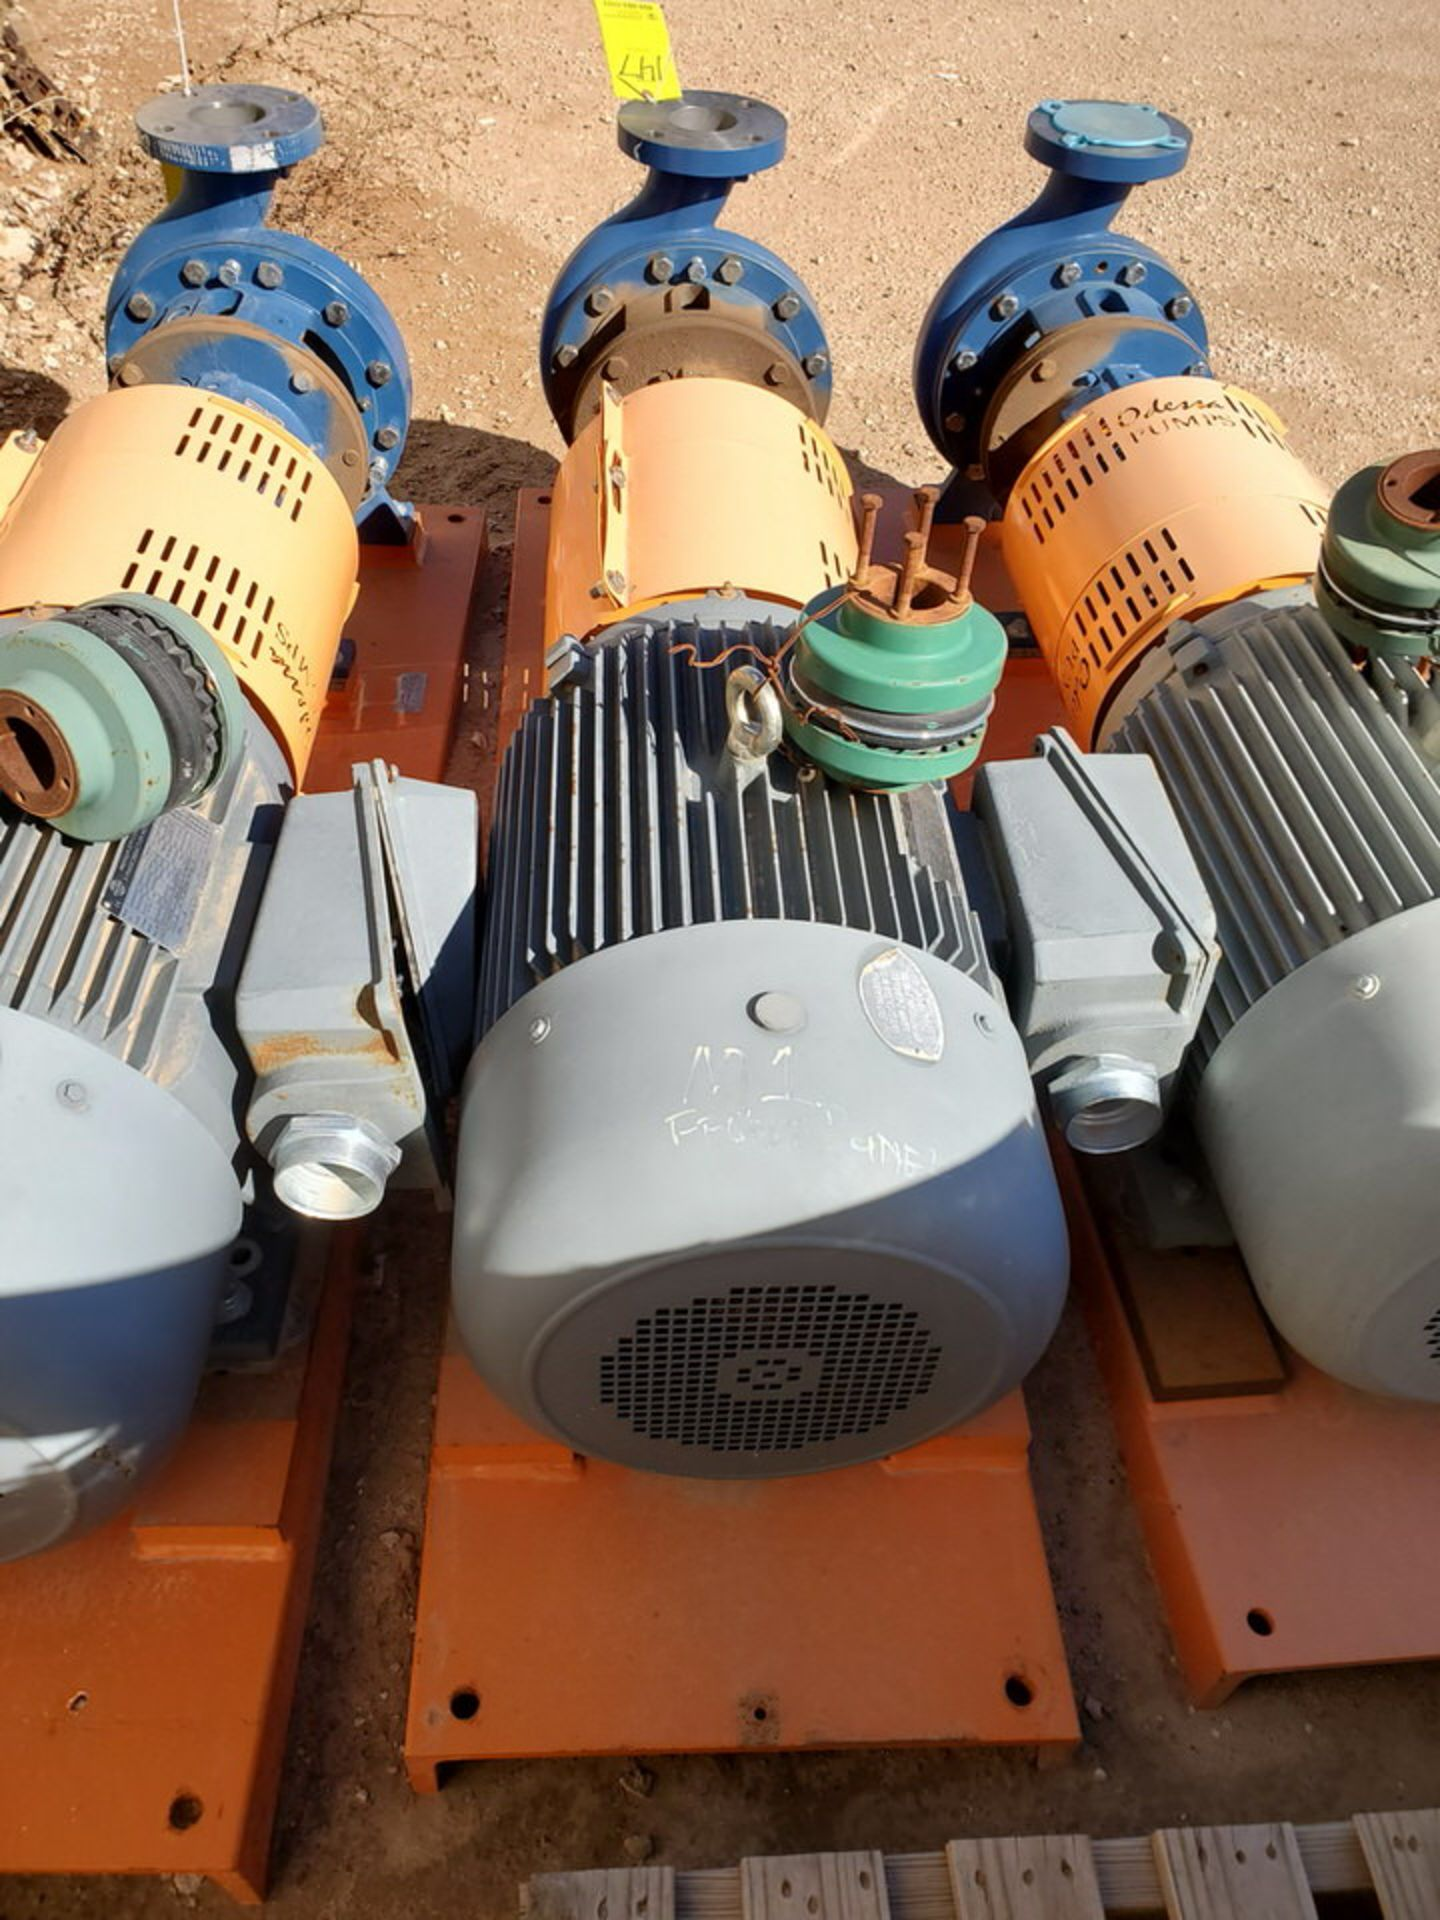 2018 Griswold 811M Centrifugal Pump Size: 4 x 3-10, 7.83 Imp Dia; W/ 50HP Motor - Image 5 of 8